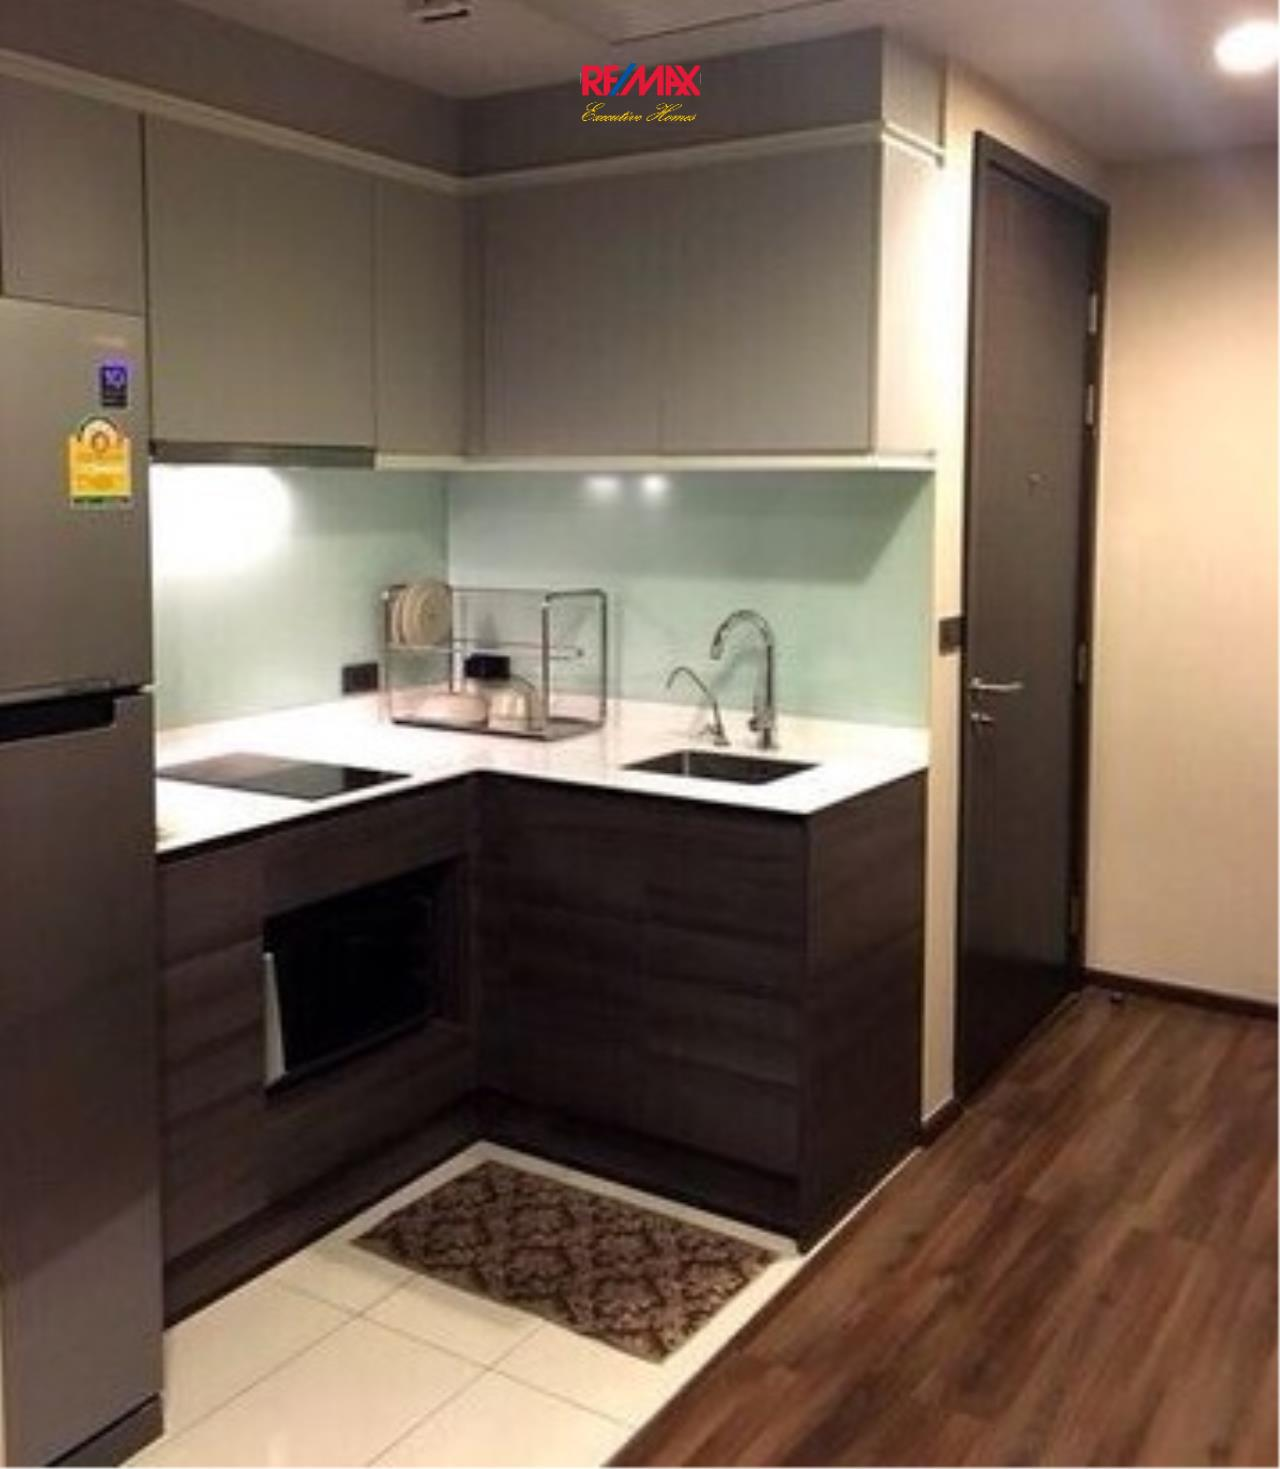 RE/MAX Executive Homes Agency's Nice 1 Bedroom for Sale Ceil by Sansiri 5